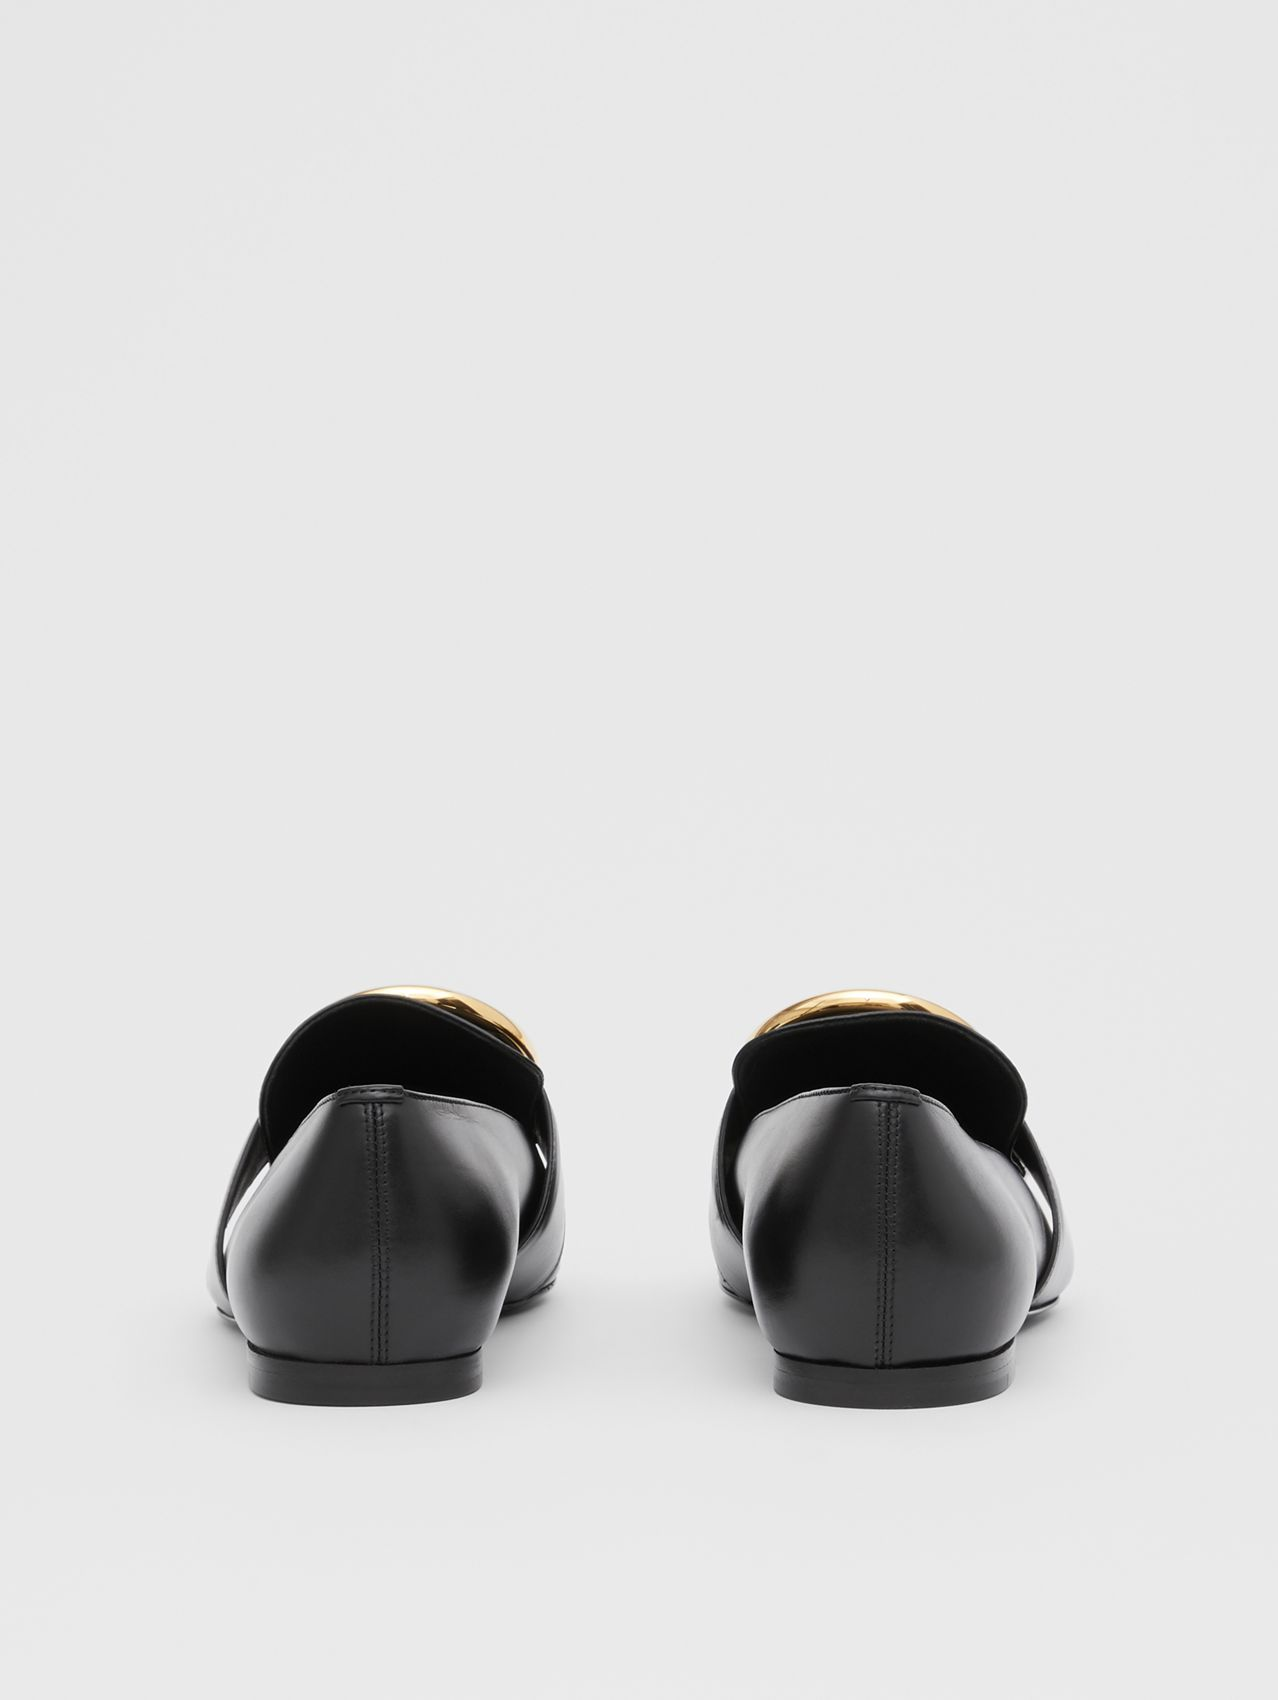 Monogram Motif Leather Loafers in Black